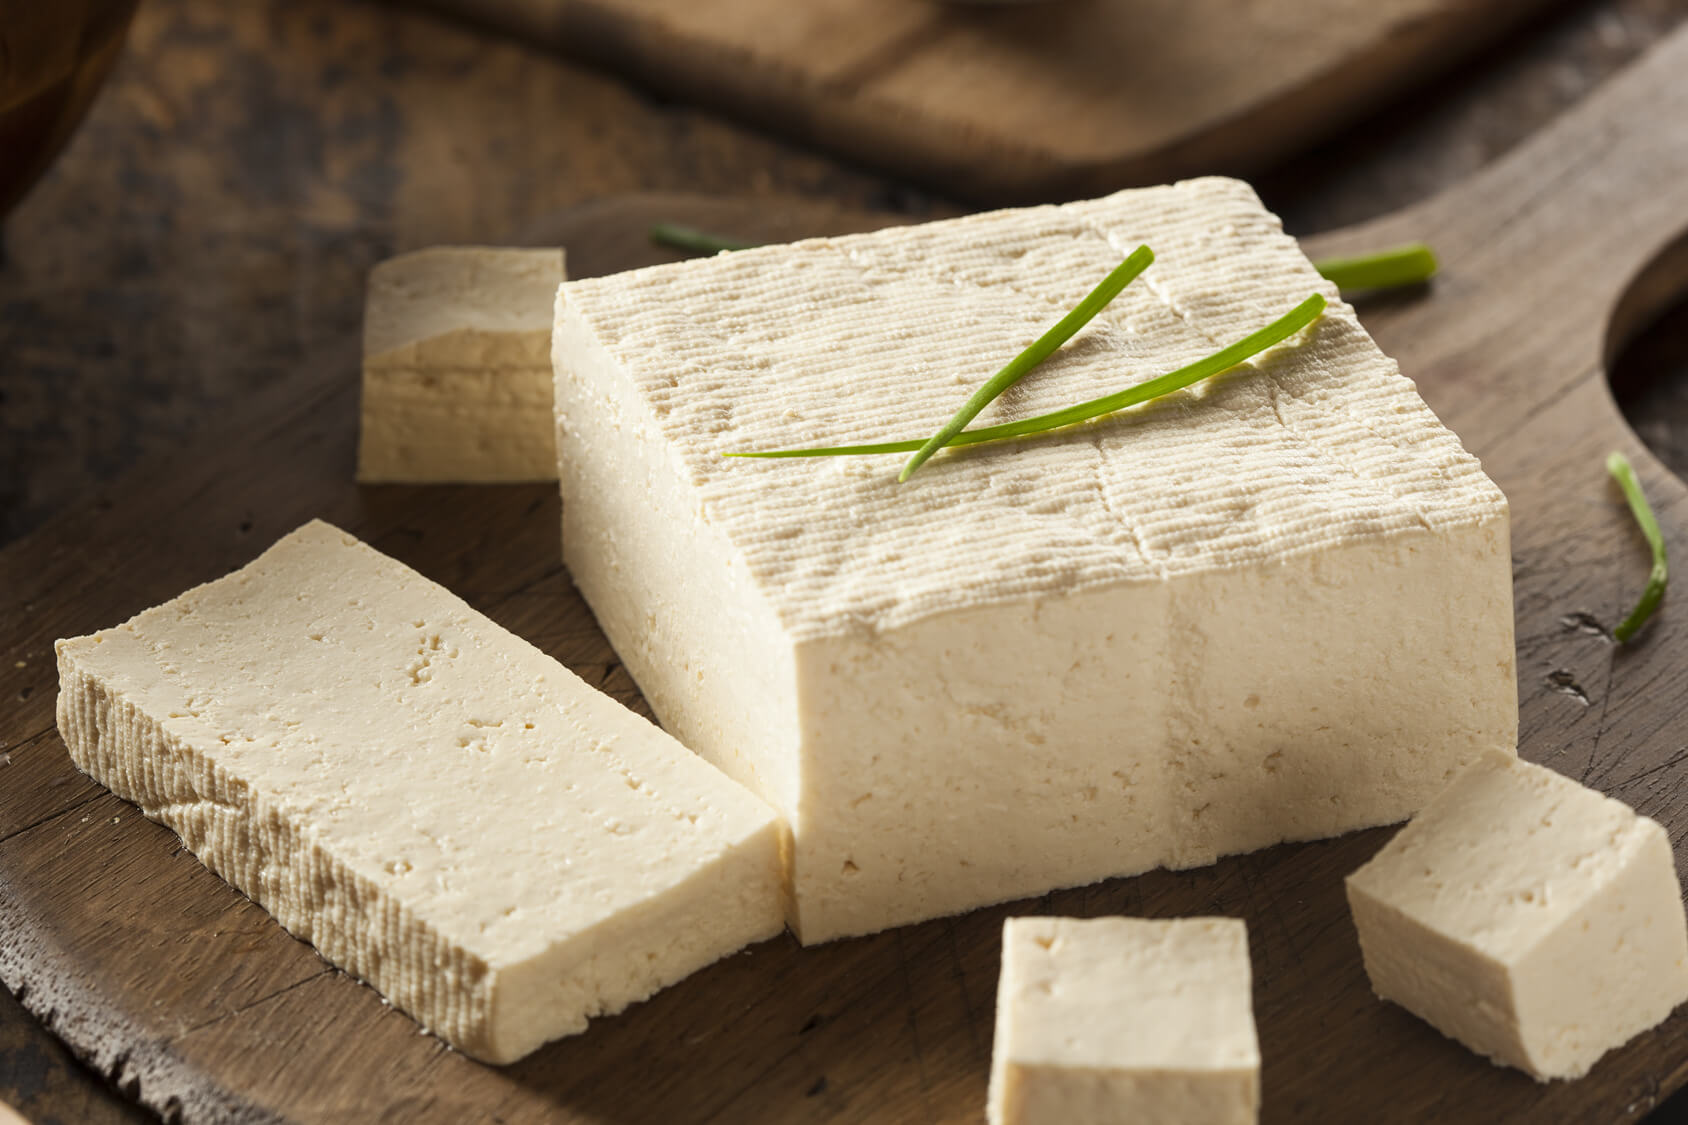 Tofu is made from soya beans